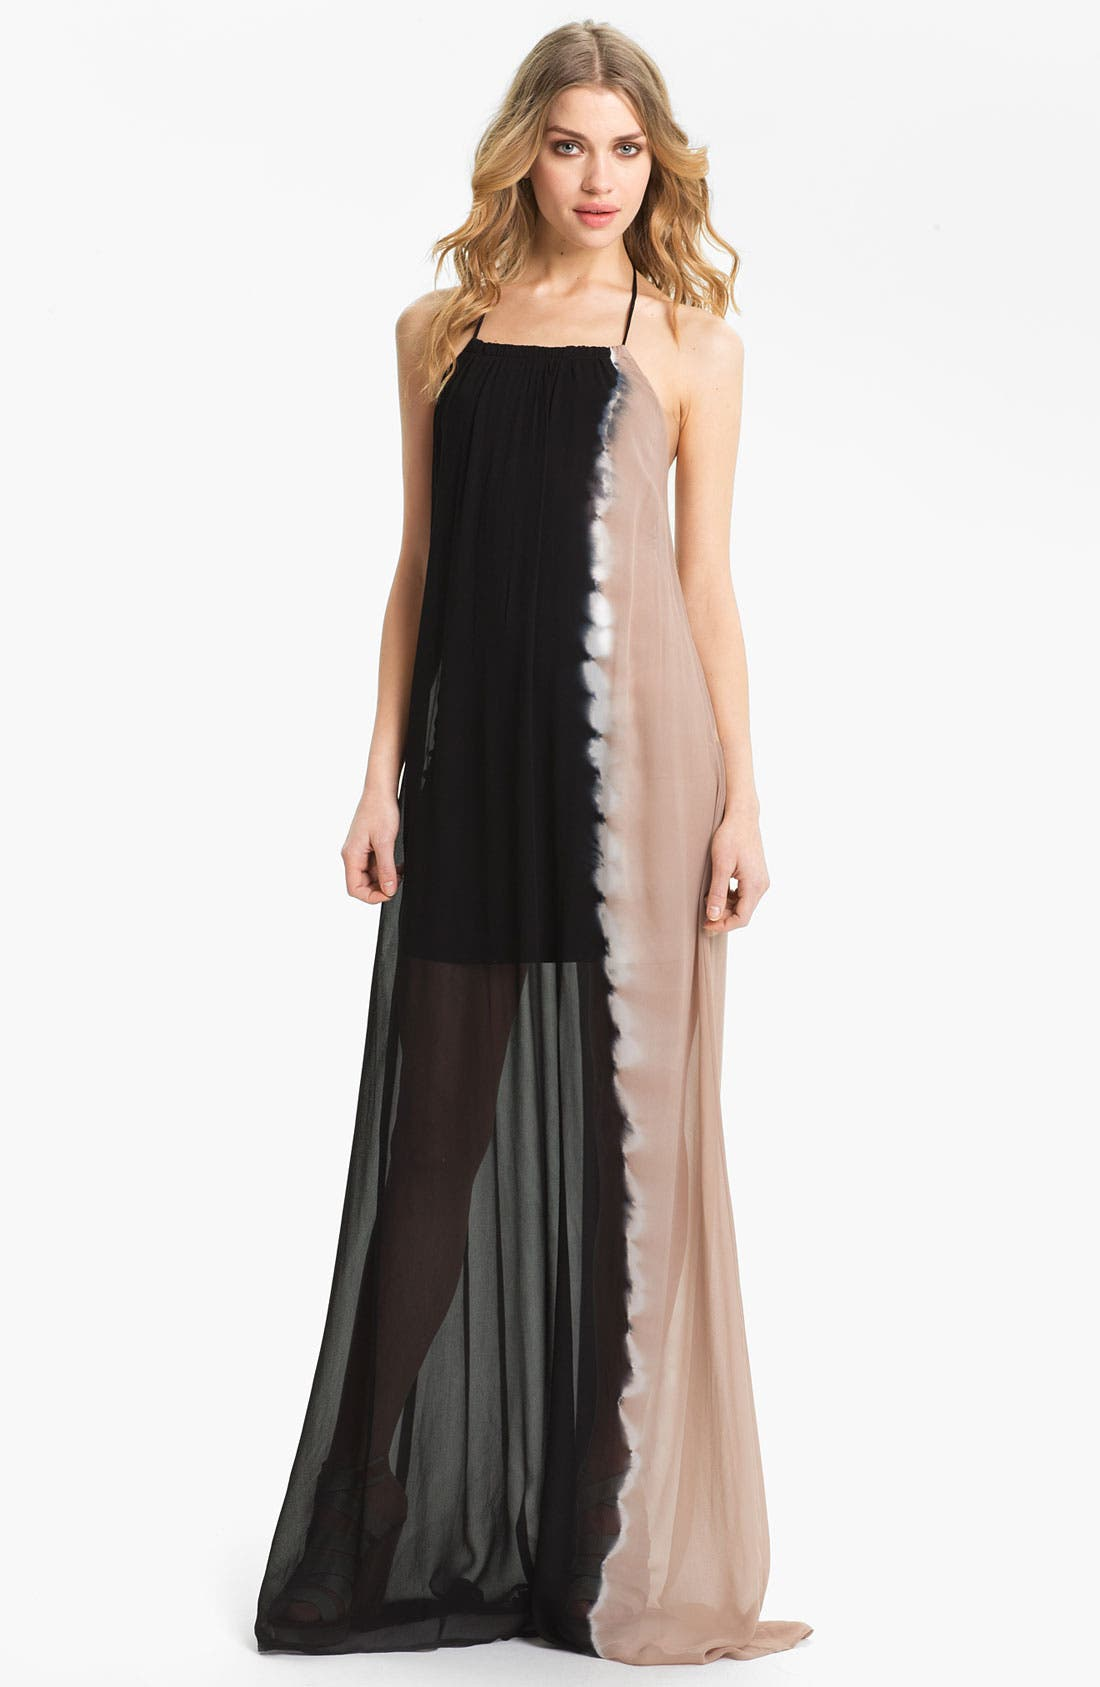 Alternate Image 1 Selected - Young, Fabulous & Broke 'Gila' Chiffon Maxi Dress